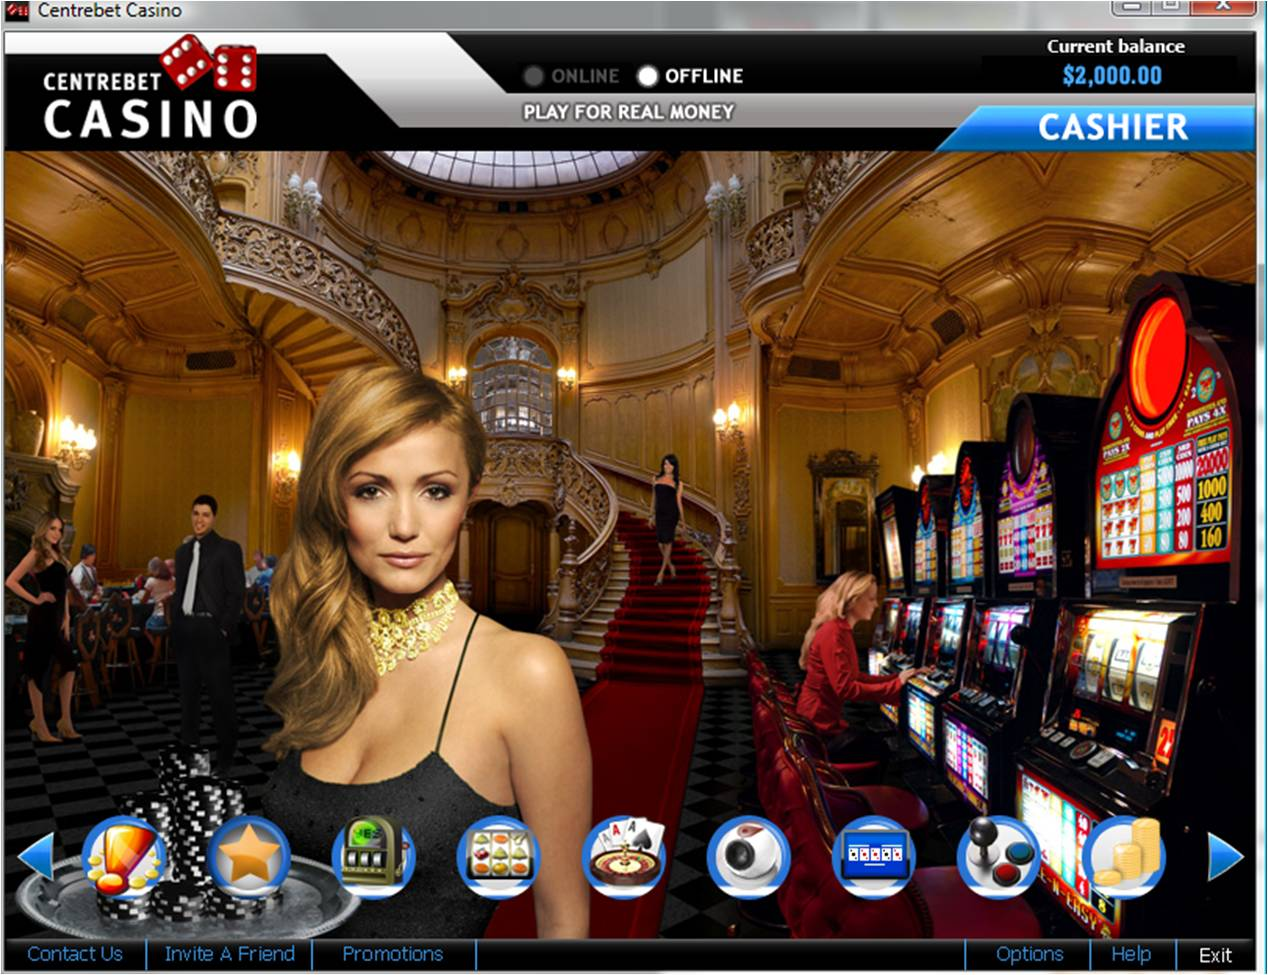 Betting casino casino casino gambling gaming internet online casino cytech neteller online